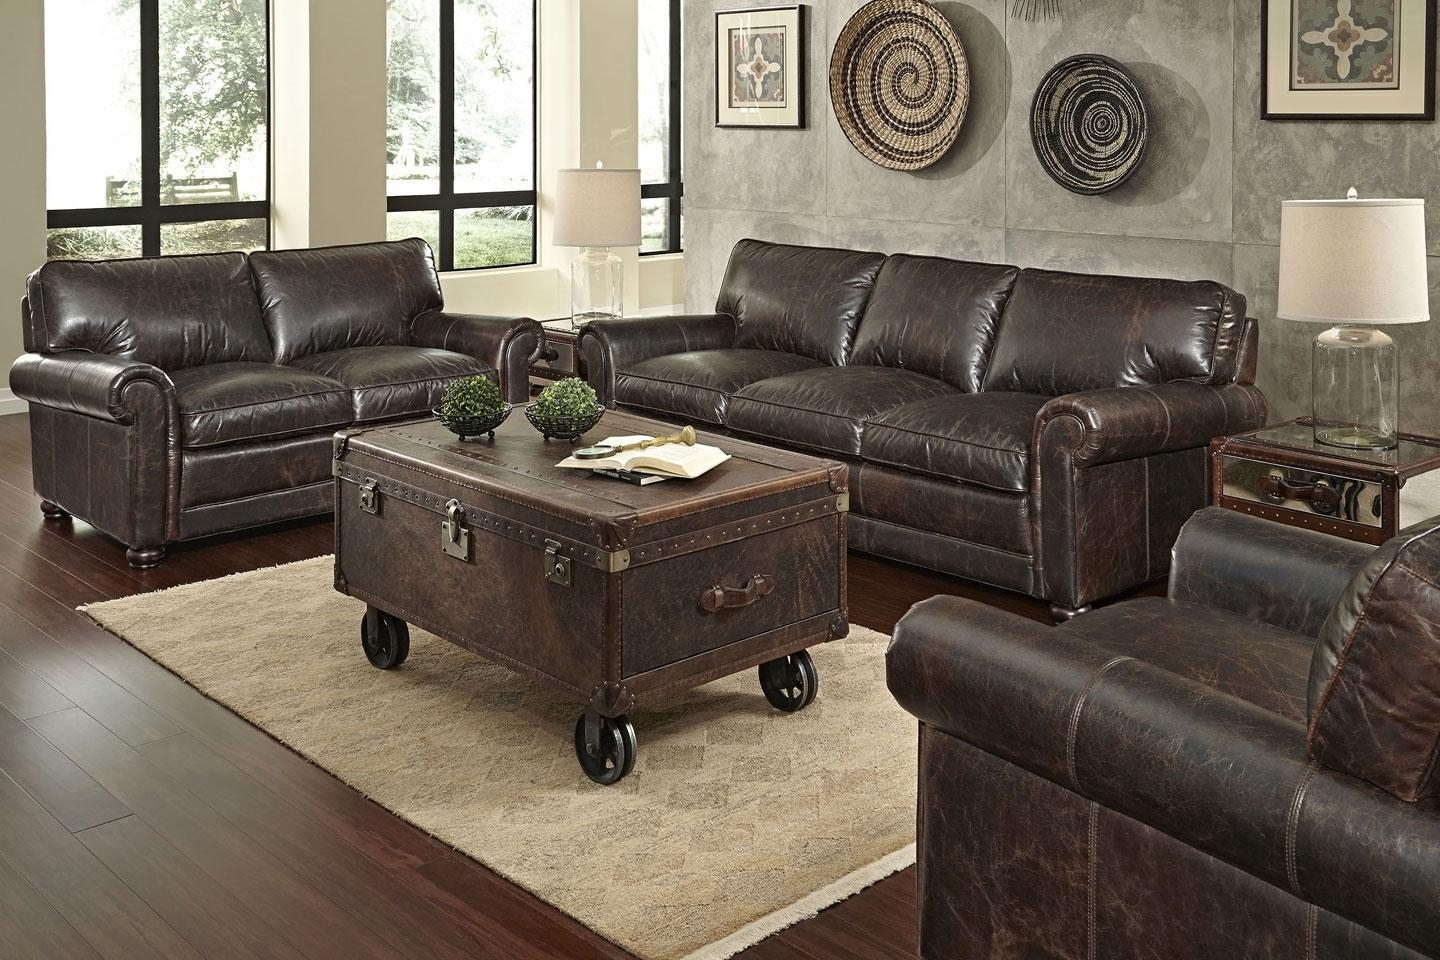 Leather Sofa And Loveseat Set Pertaining To Black Leather Sofas And Loveseat Sets (View 20 of 20)